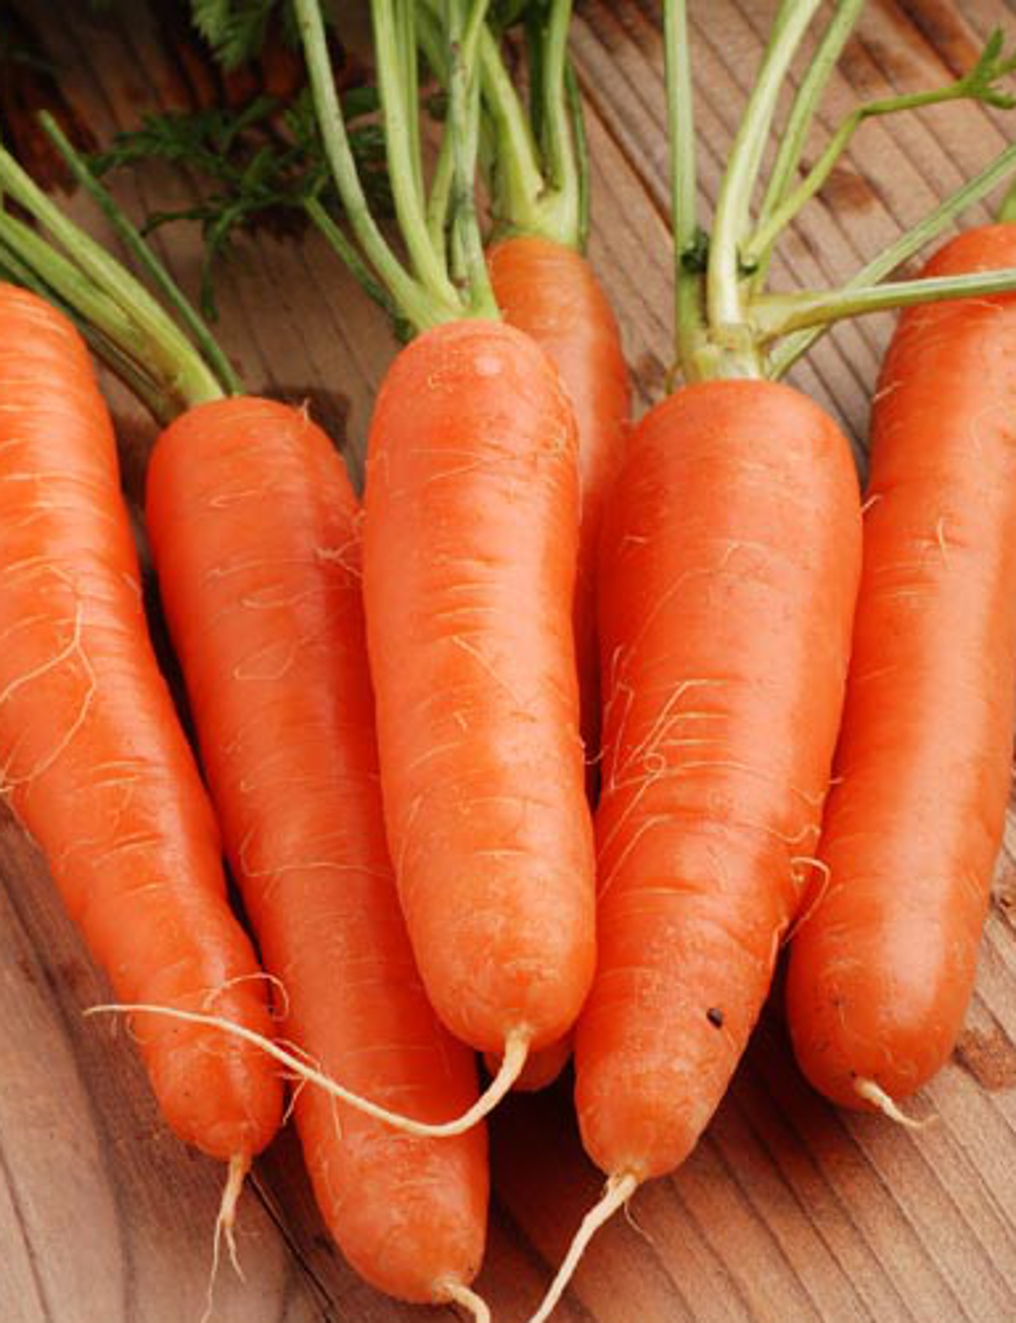 CARROT 'Early Nantes' - Daucas carota ssp. sativus